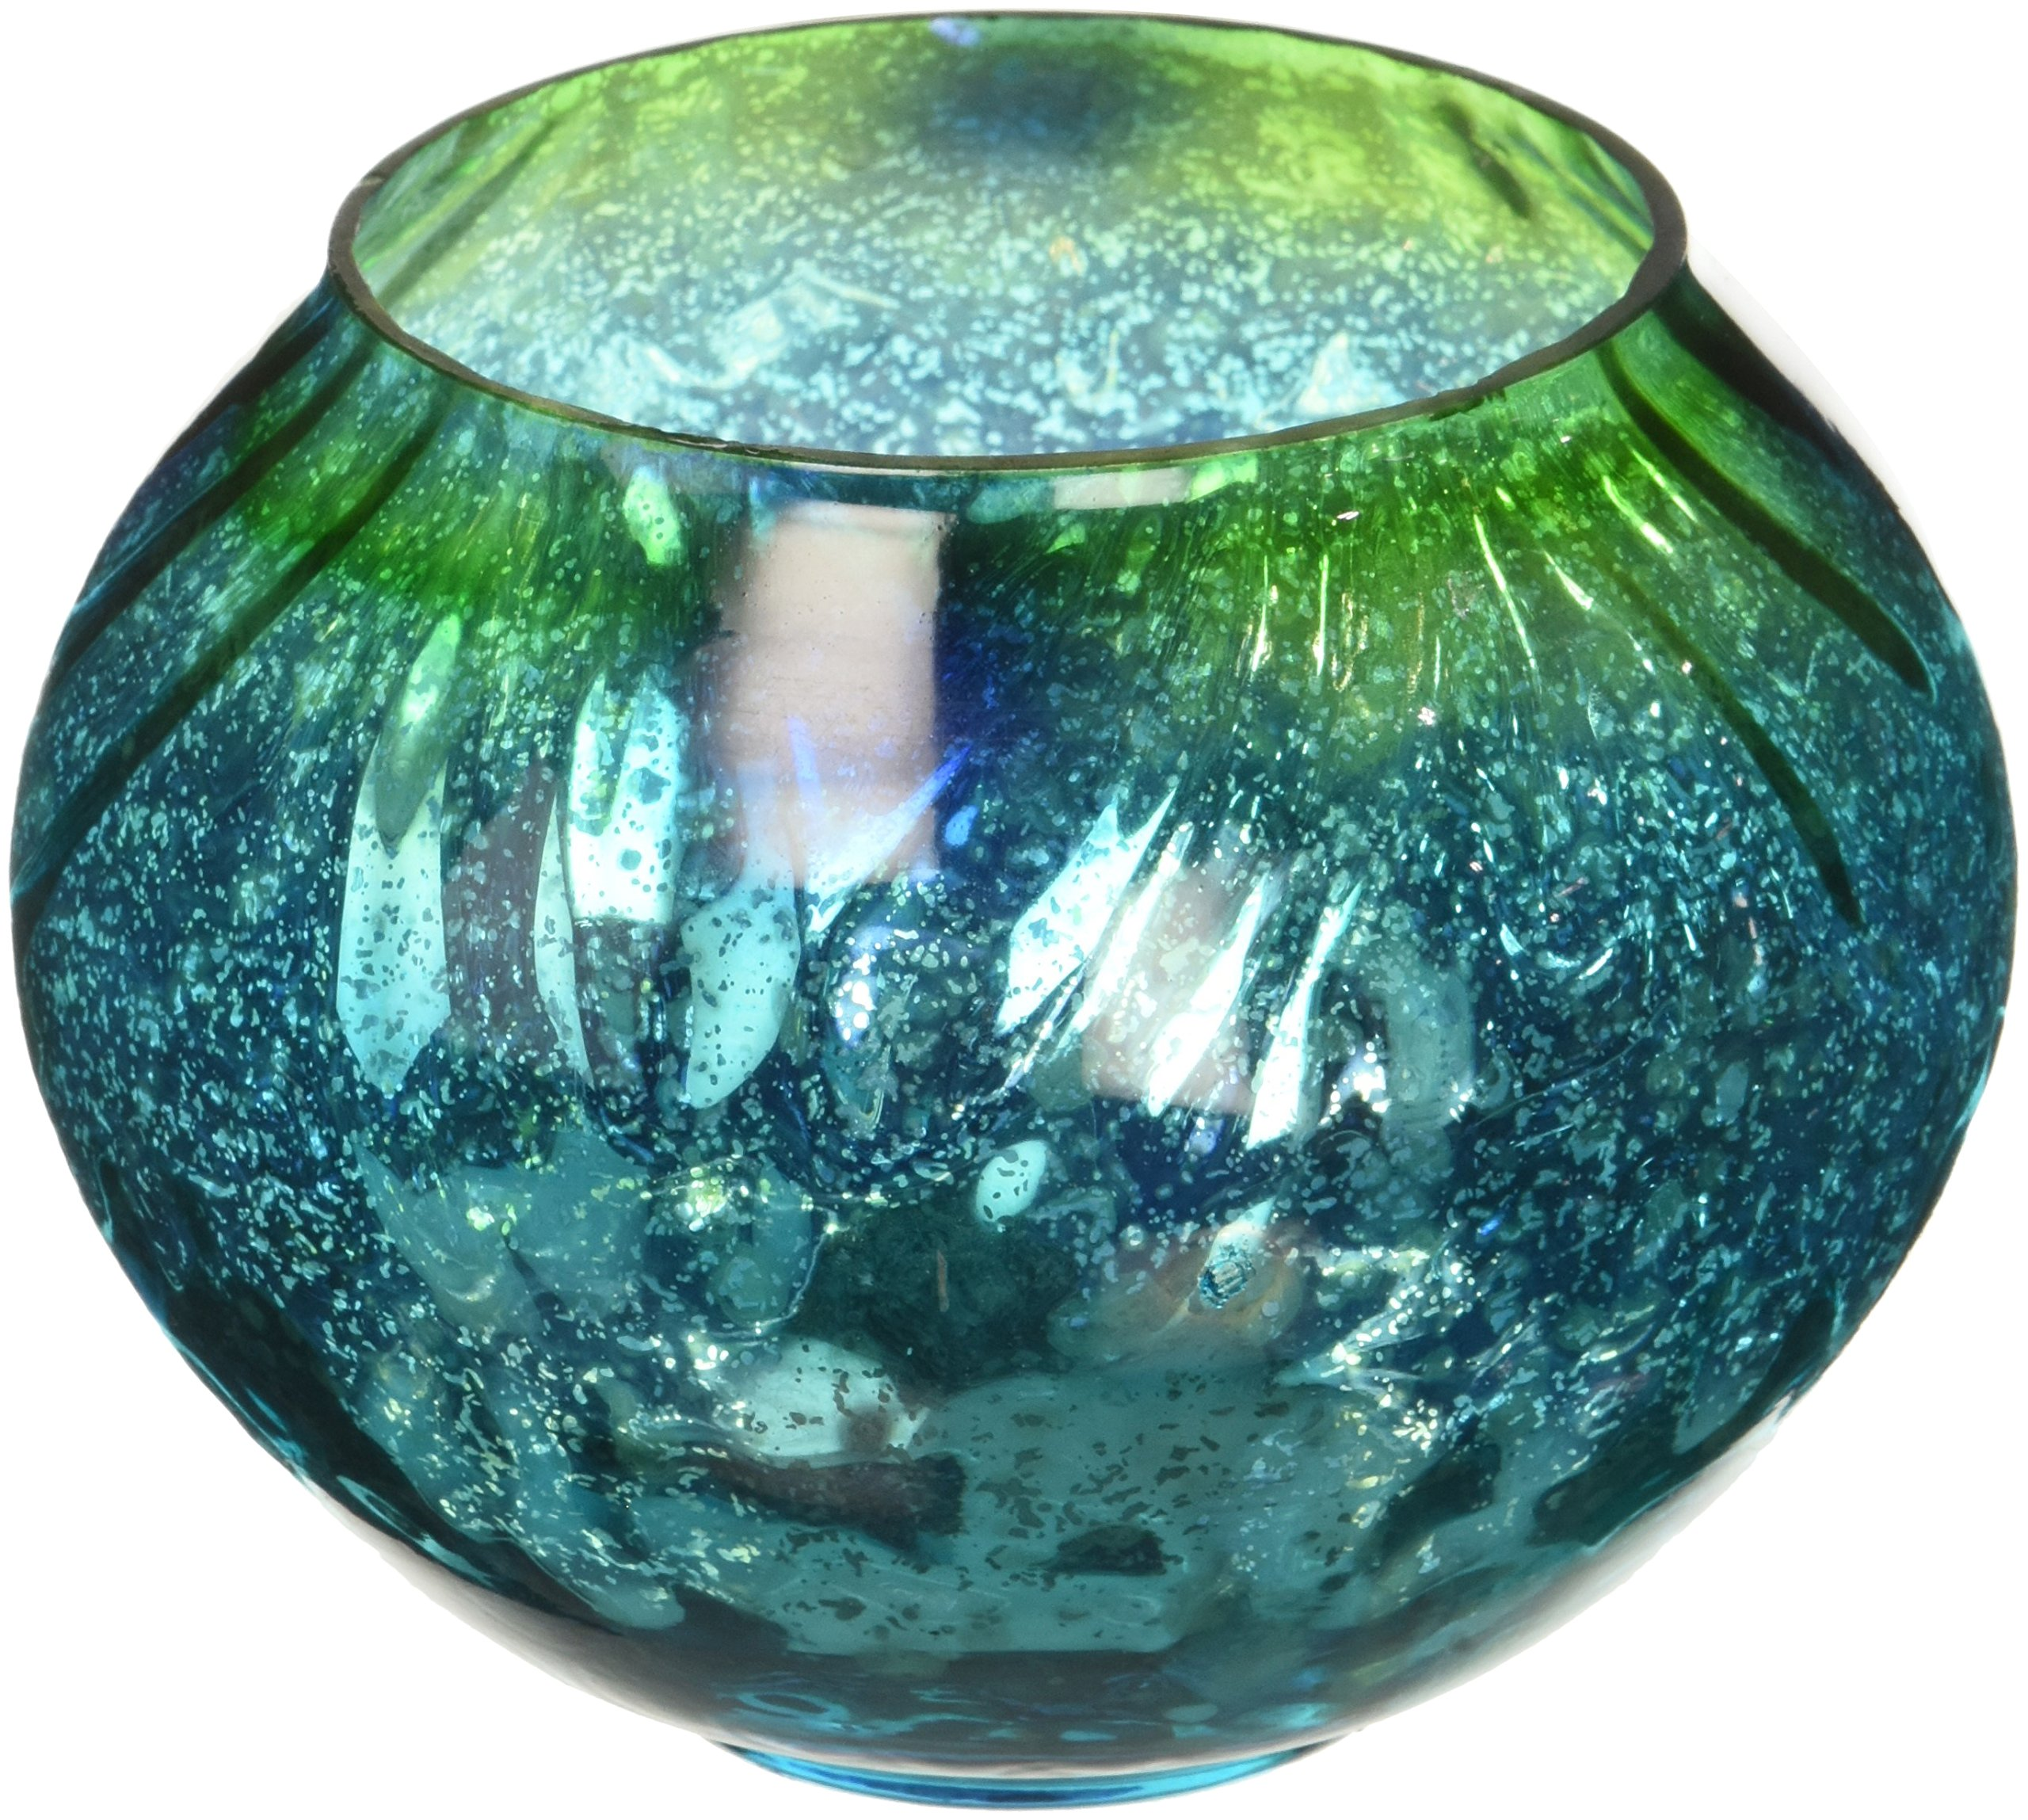 Gallery of Light Candleholders Mediterranean Swell Candleholder Sparkling Greens & Blues Glass Colleft